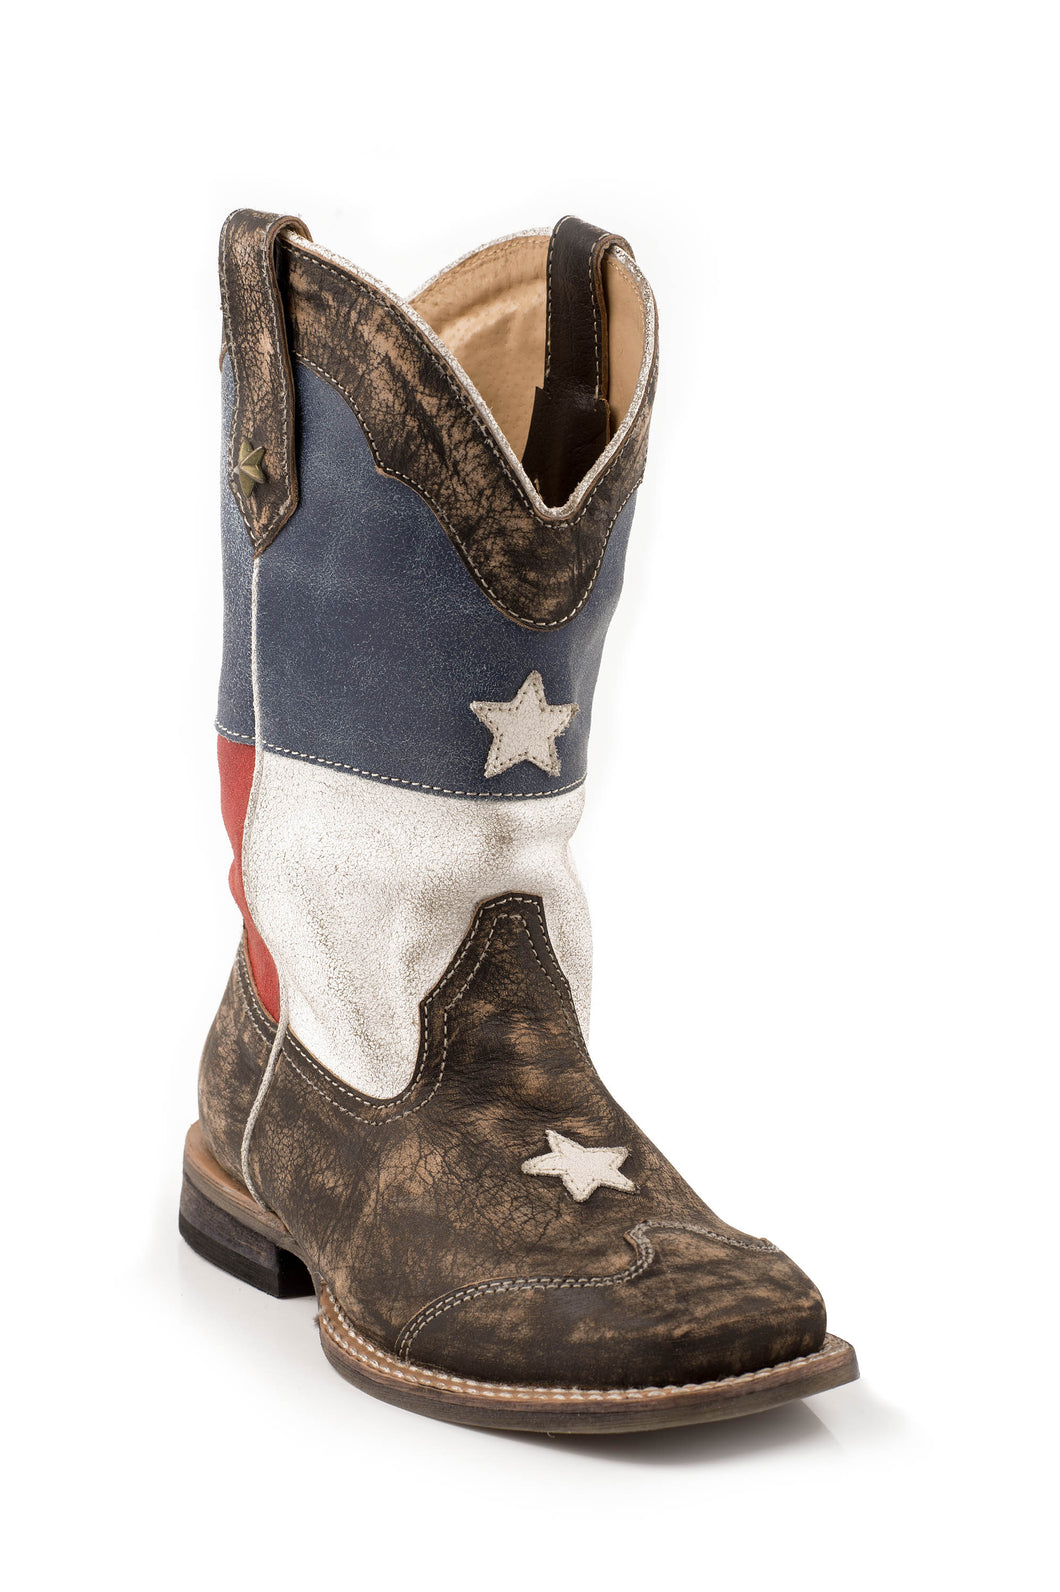 American Boot Kids Boot American Flag Wsanded Leather Sq.toe